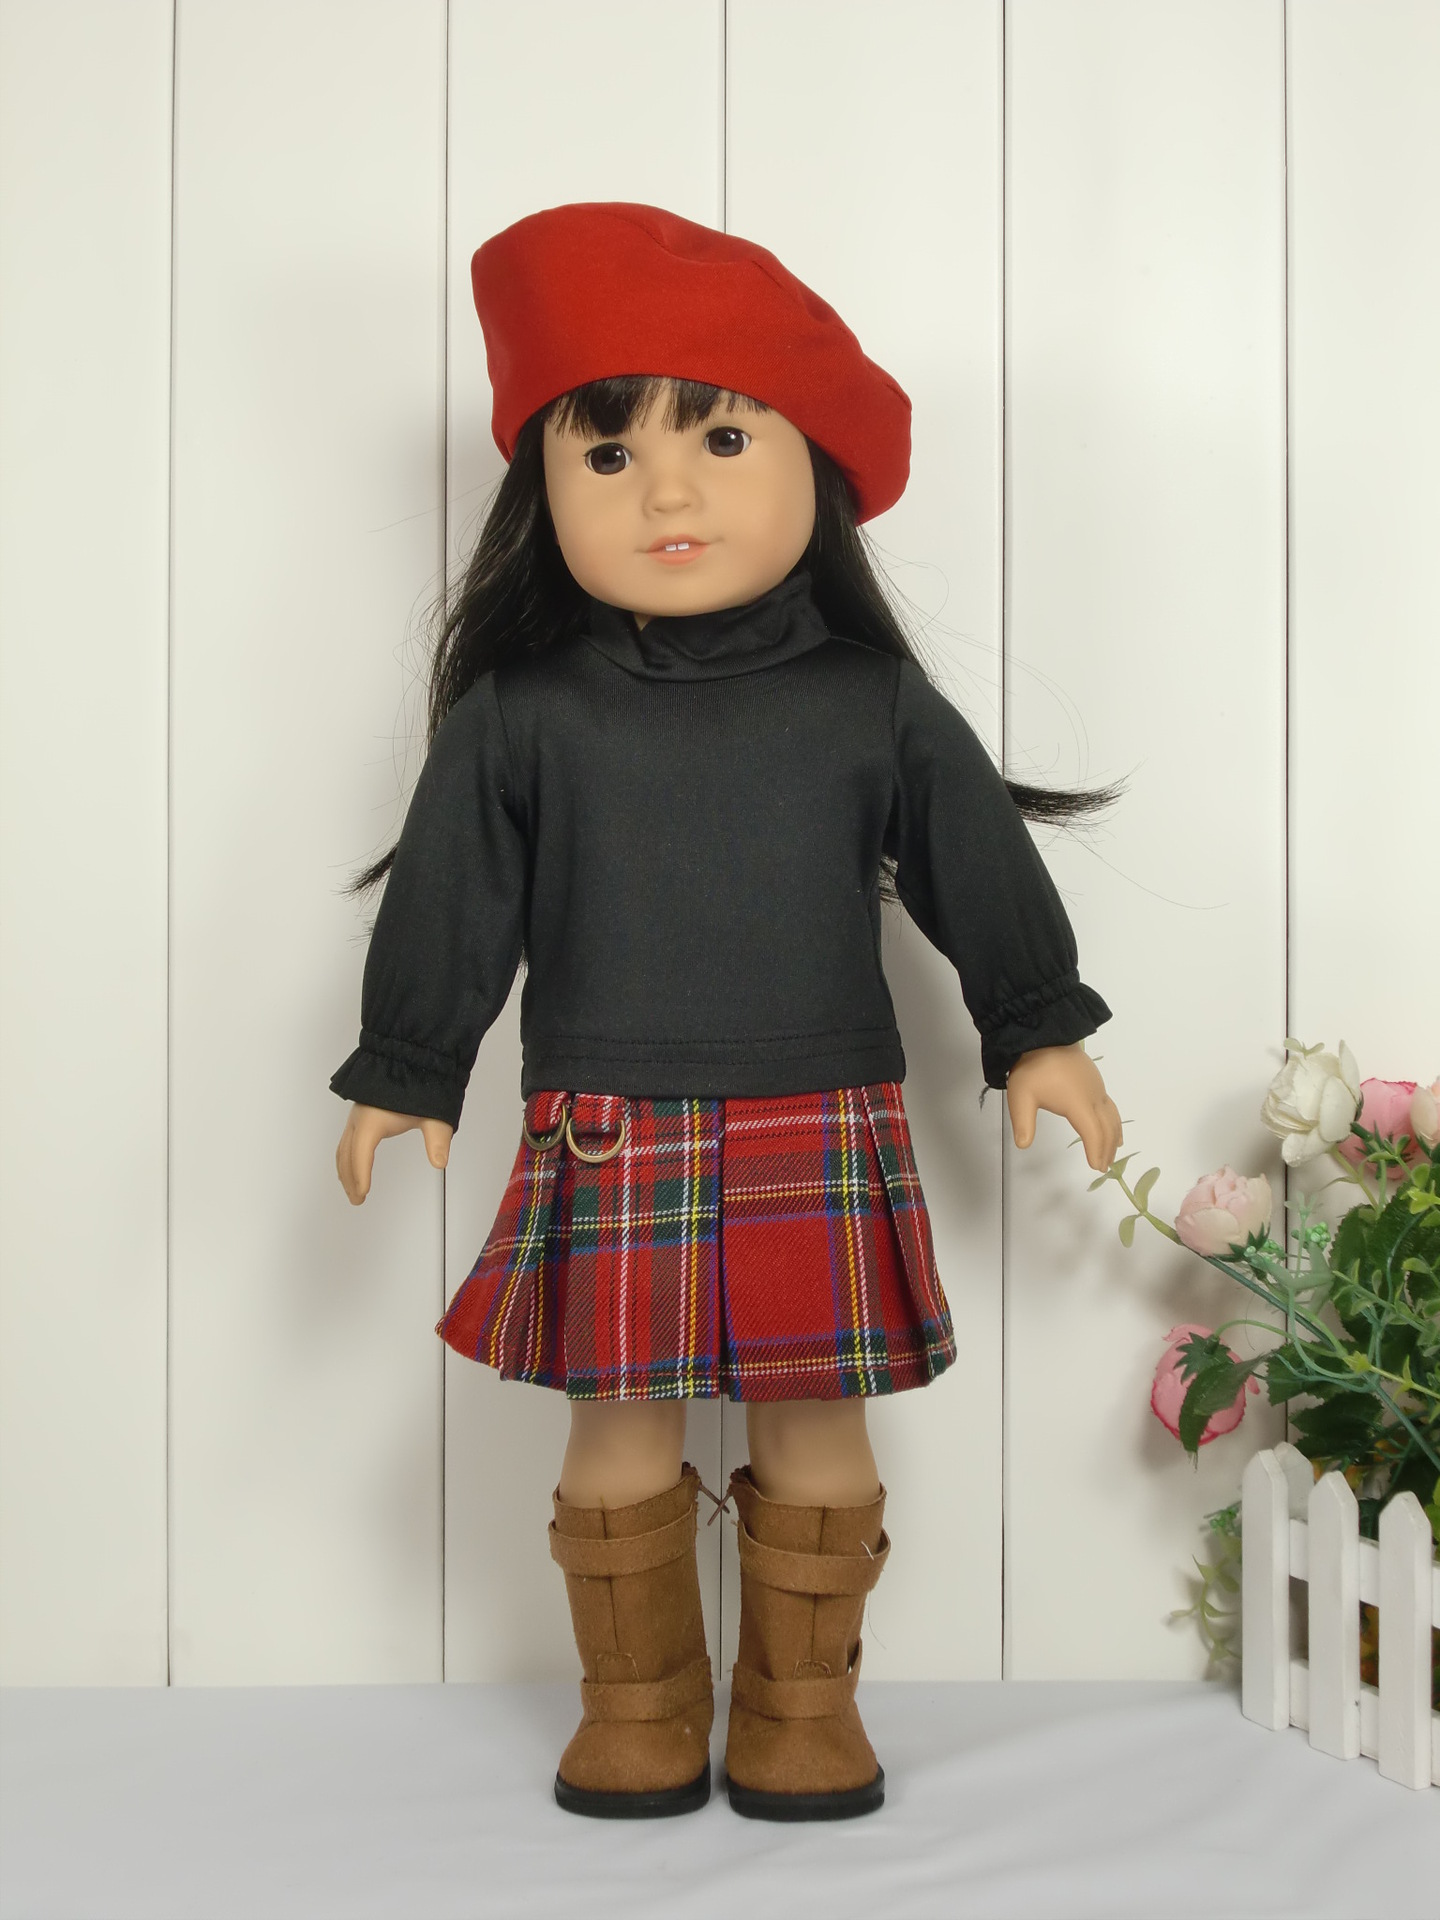 3 unids / set 1hat + 1 camisa +1 Vestido The Scotland Dress Suit For 18 pulgadas American Girl Doll 45 cm Accesorios para muñecas